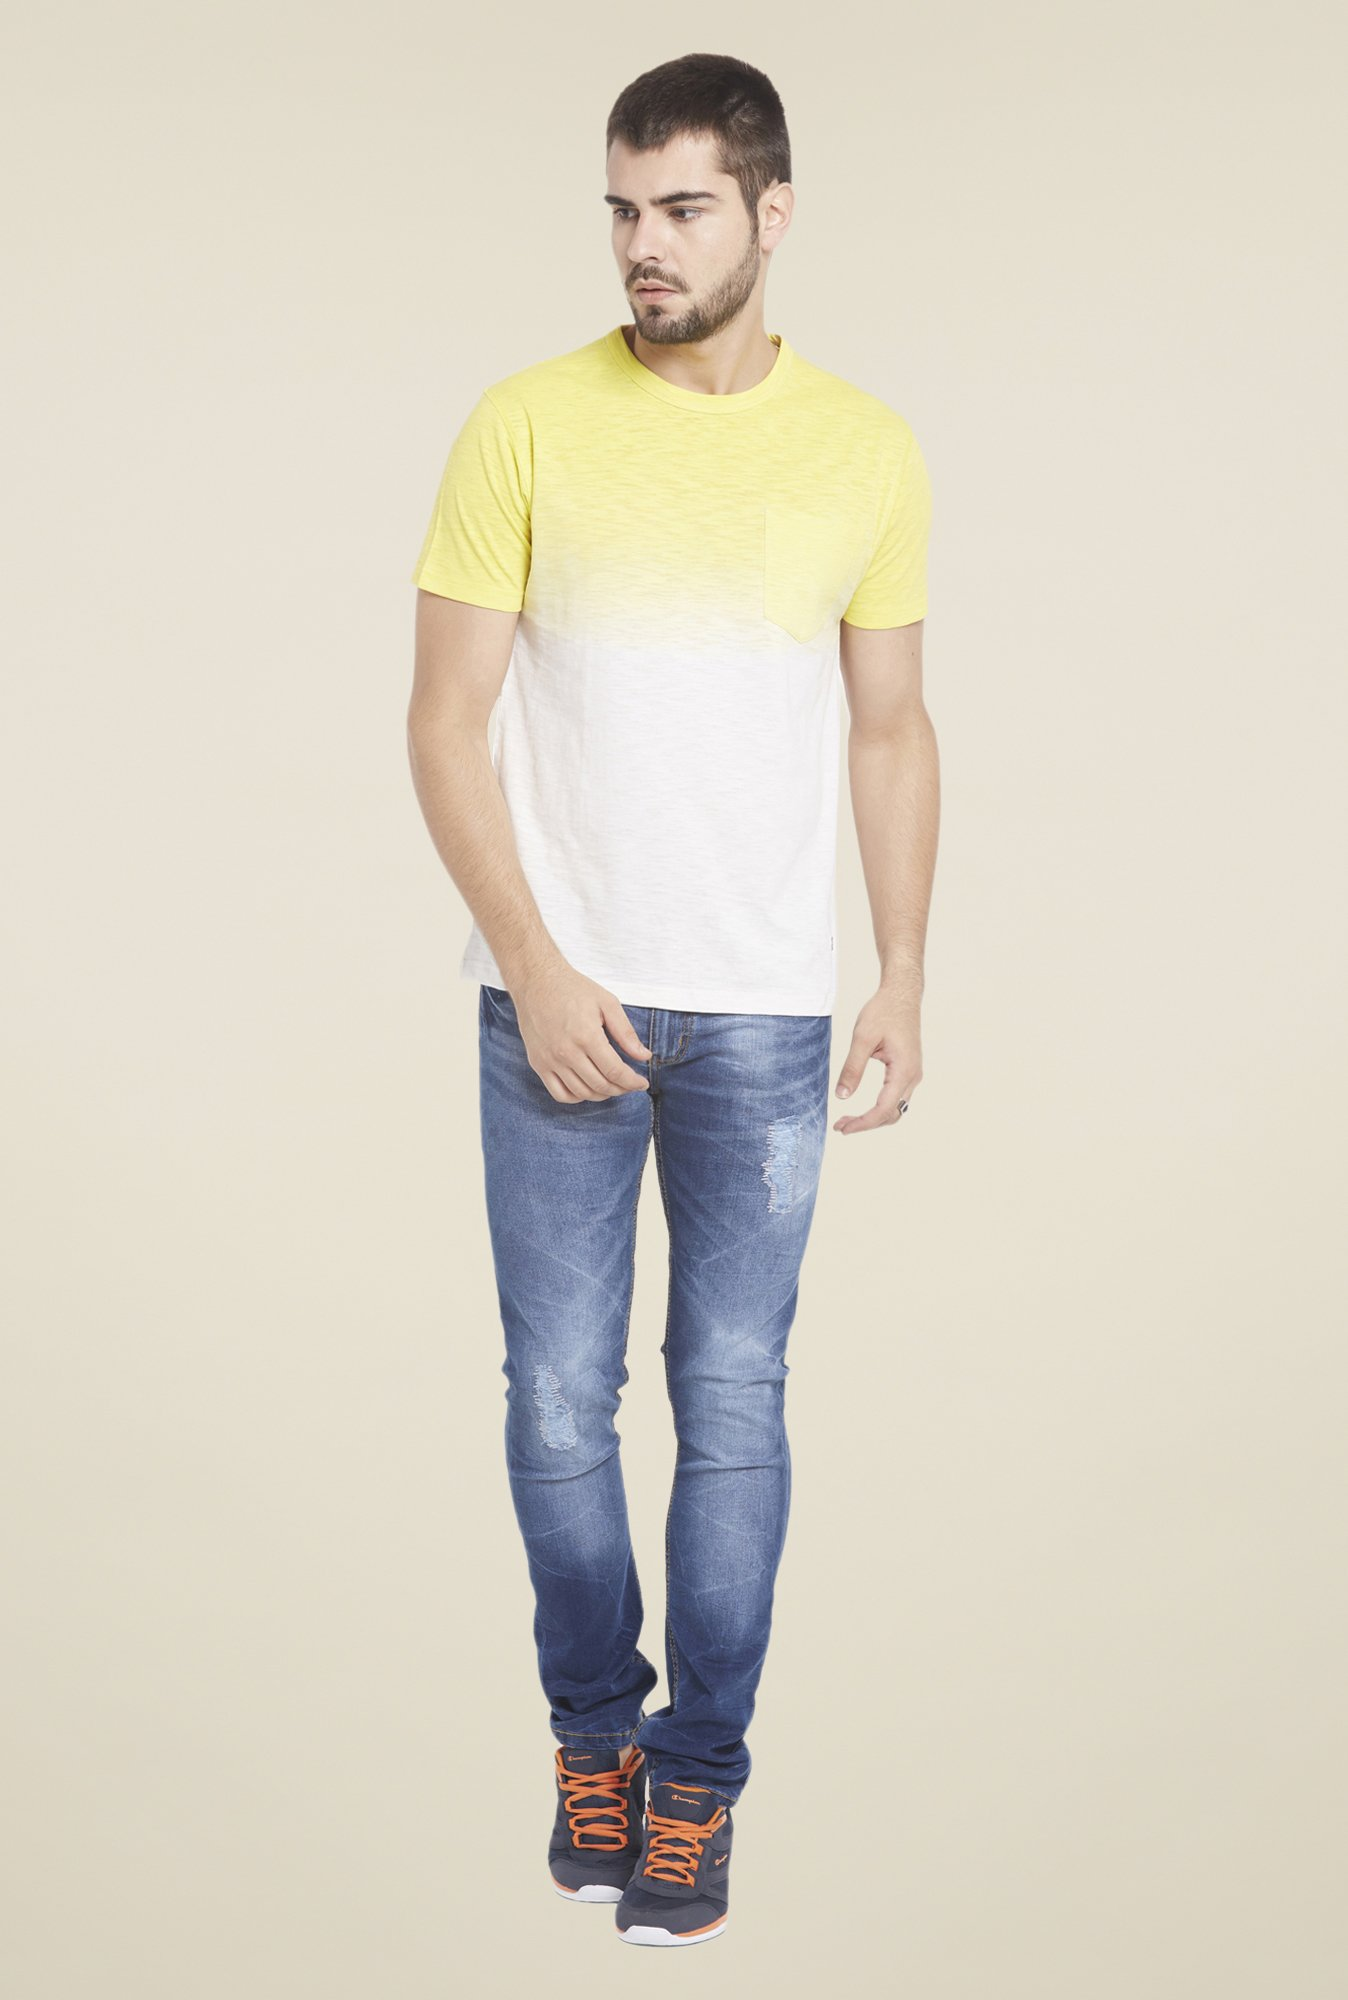 Globus White & Yellow Ombre T Shirt